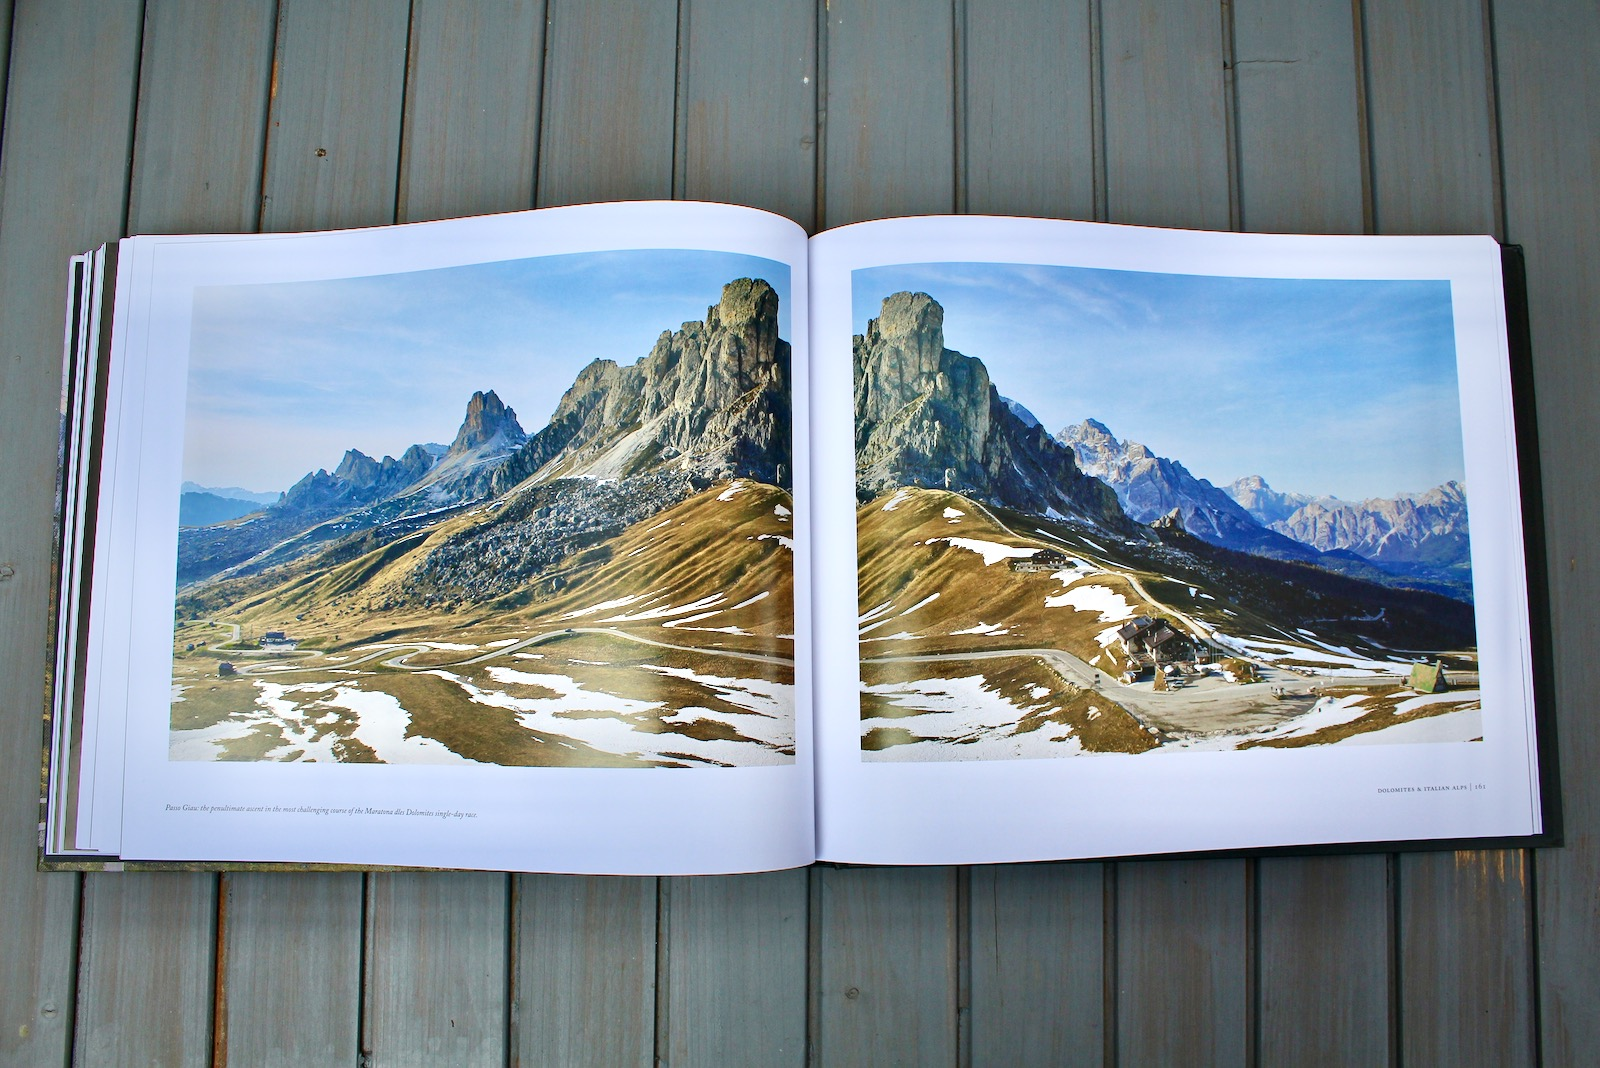 'Mountains : Epic Cycling Climbs' (2nd Edition) by Michael Blann